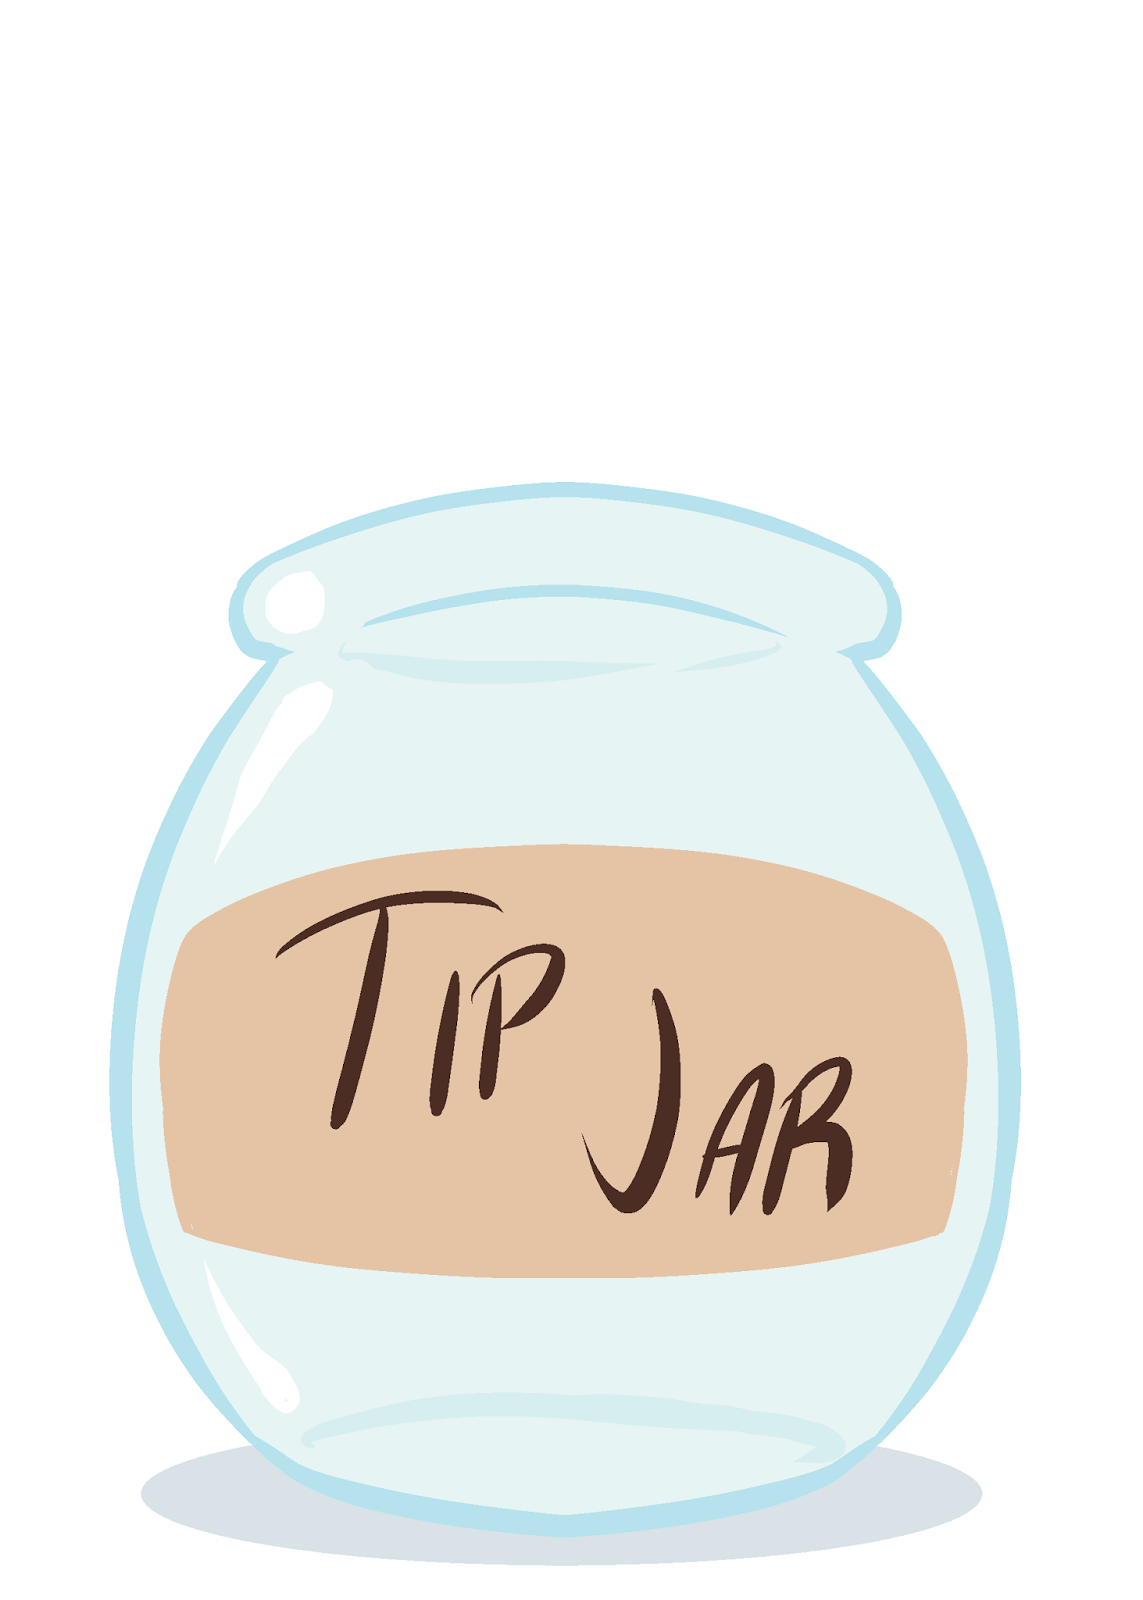 DONATIONS - My Tip Jar - Tip Jar PNG